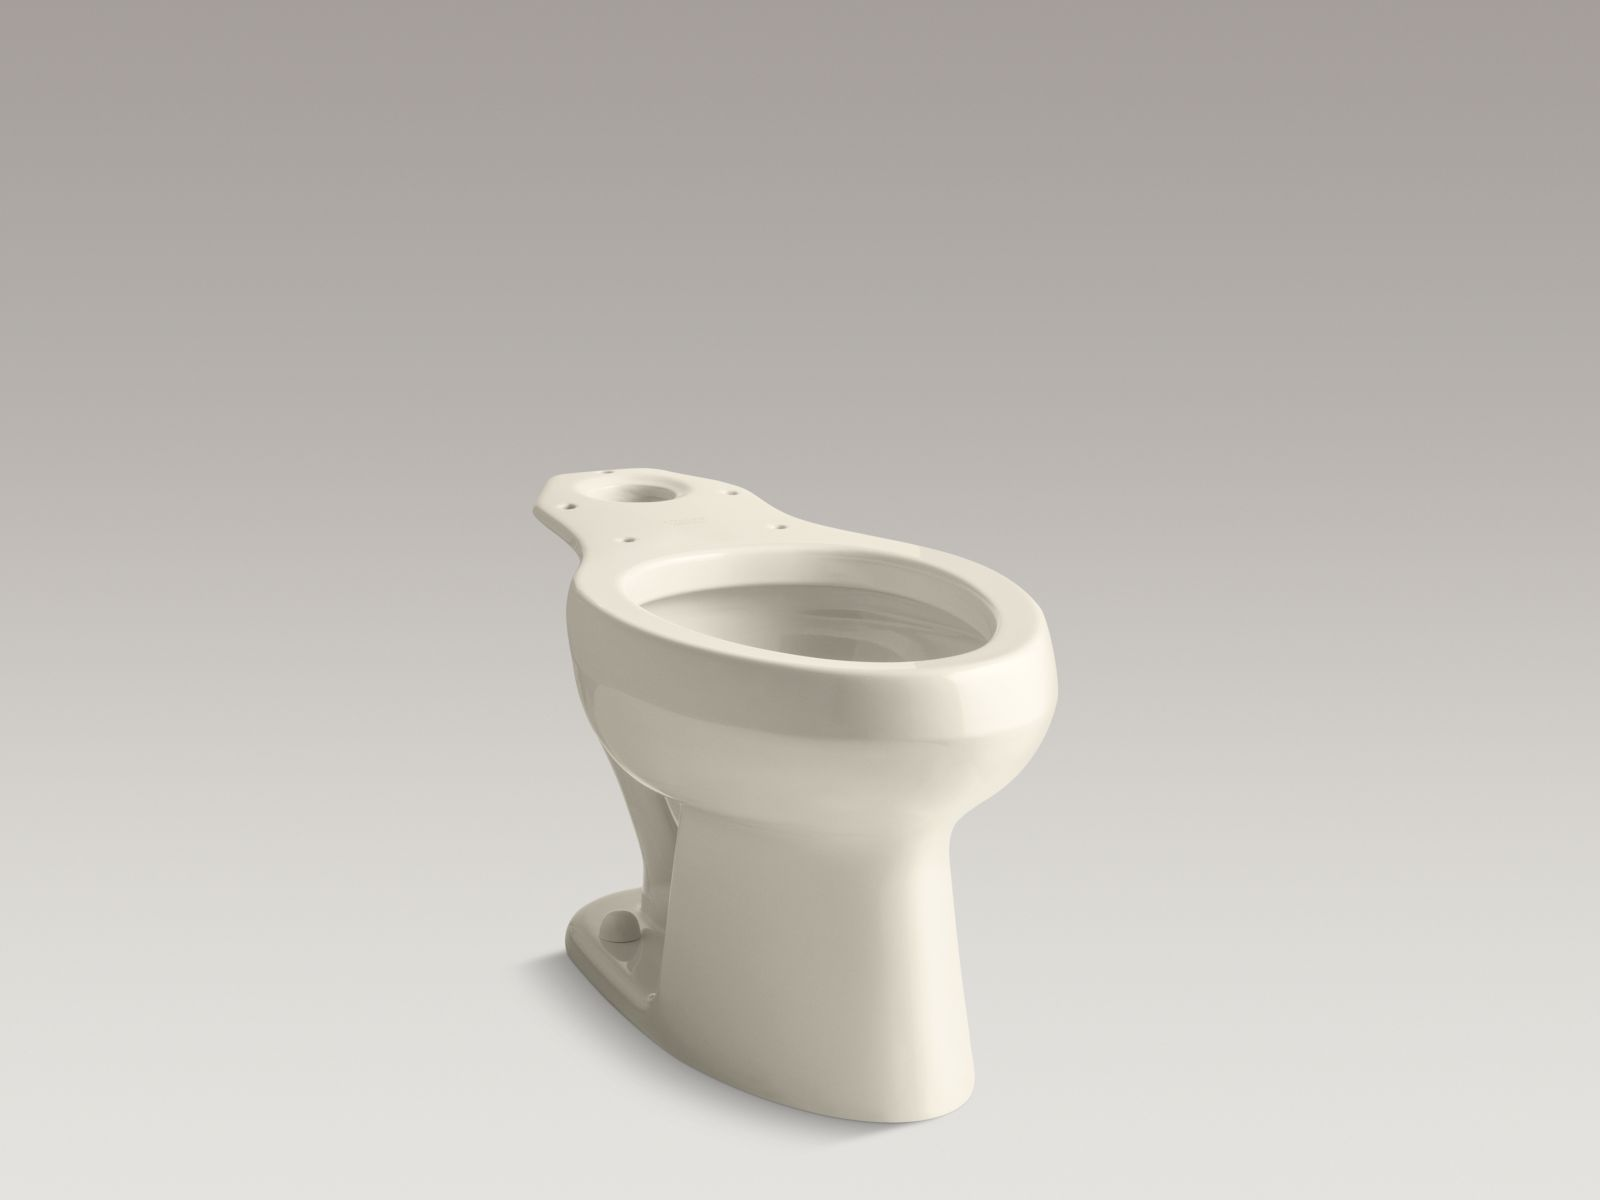 Kohler K-4303-47 Wellworth Elongated Toilet Bowl with Pressure Lite Technology Almond